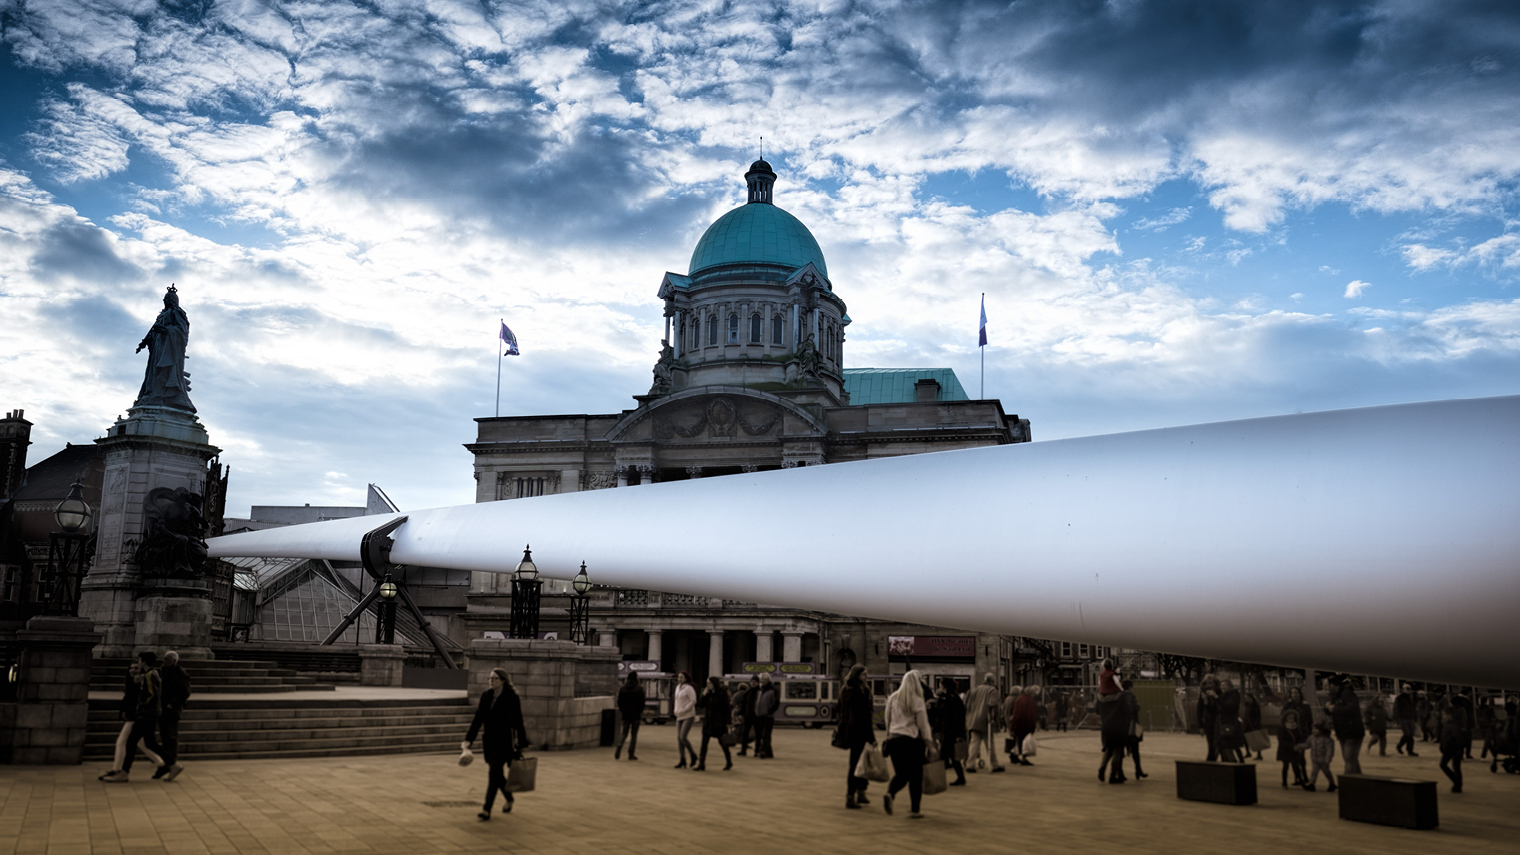 Siemens wind turbine blade in front of domed building clouds in sky